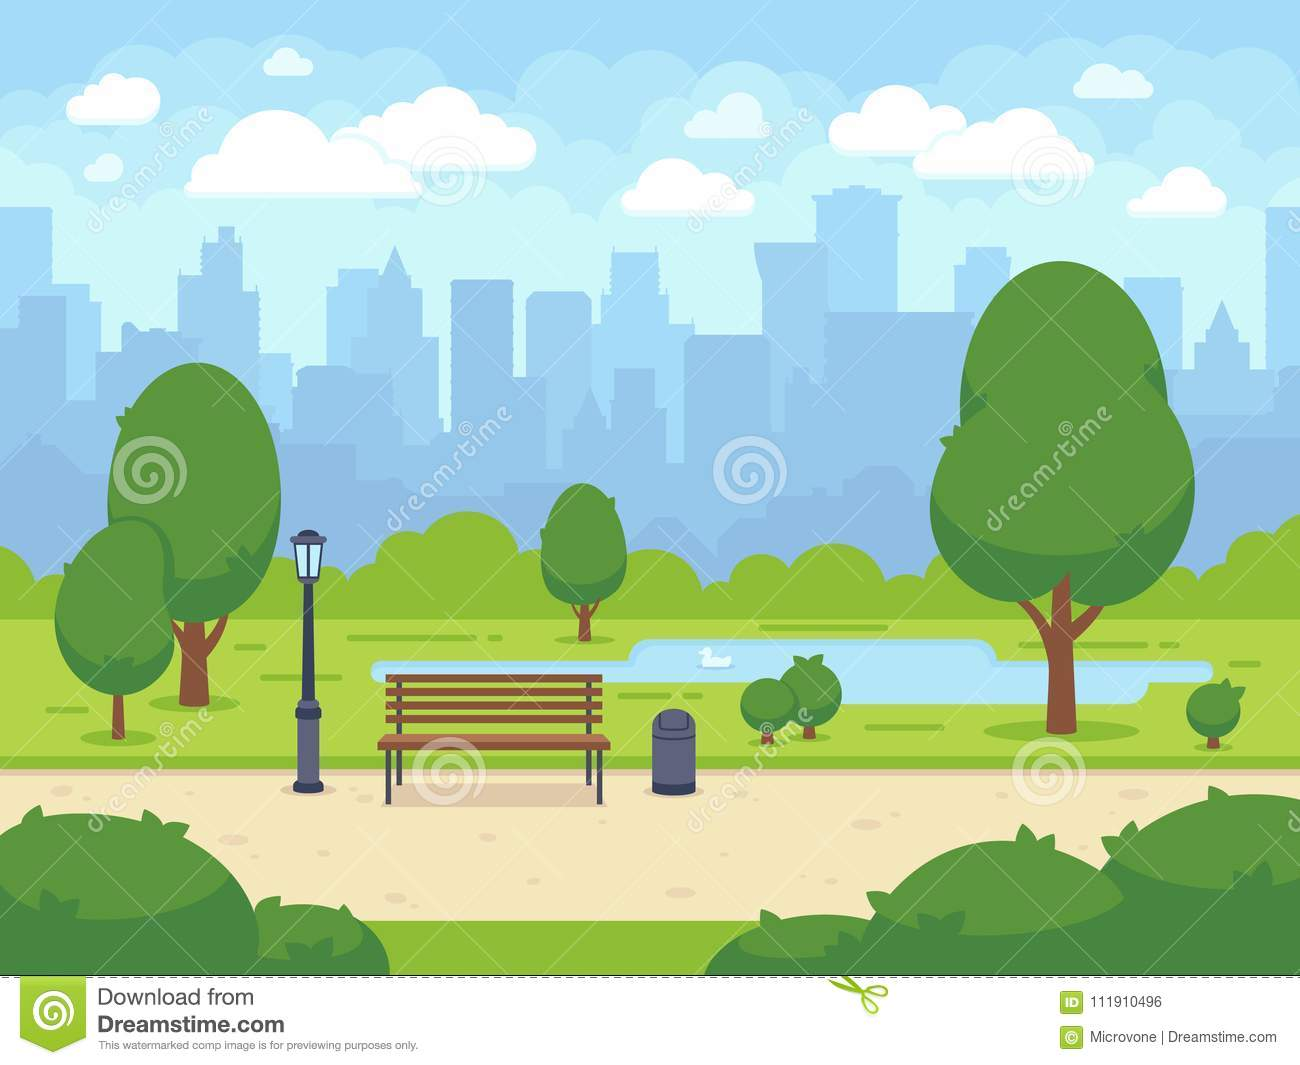 City summer park with green trees bench, walkway and lantern. Cartoon vector illustration